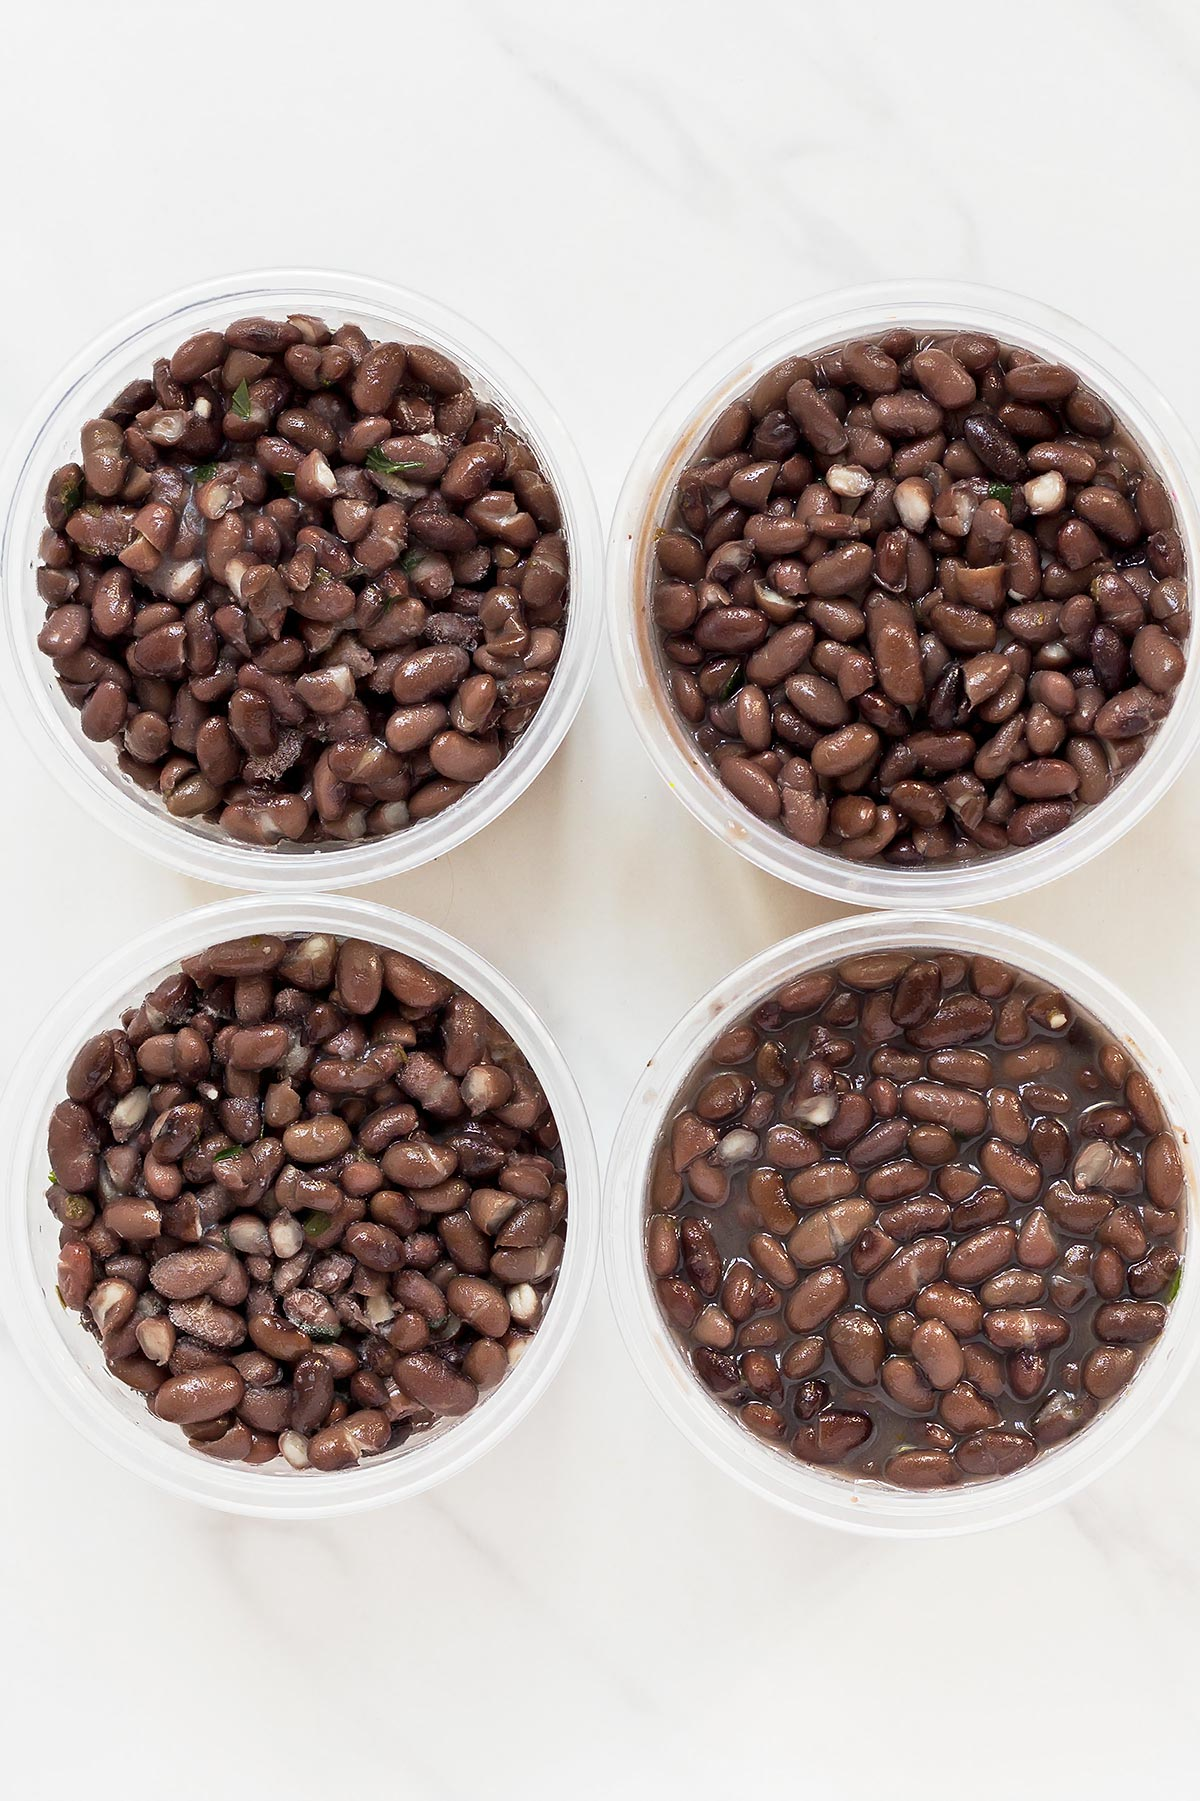 Cooked Instant Pot Black Beans in 4 storage containers